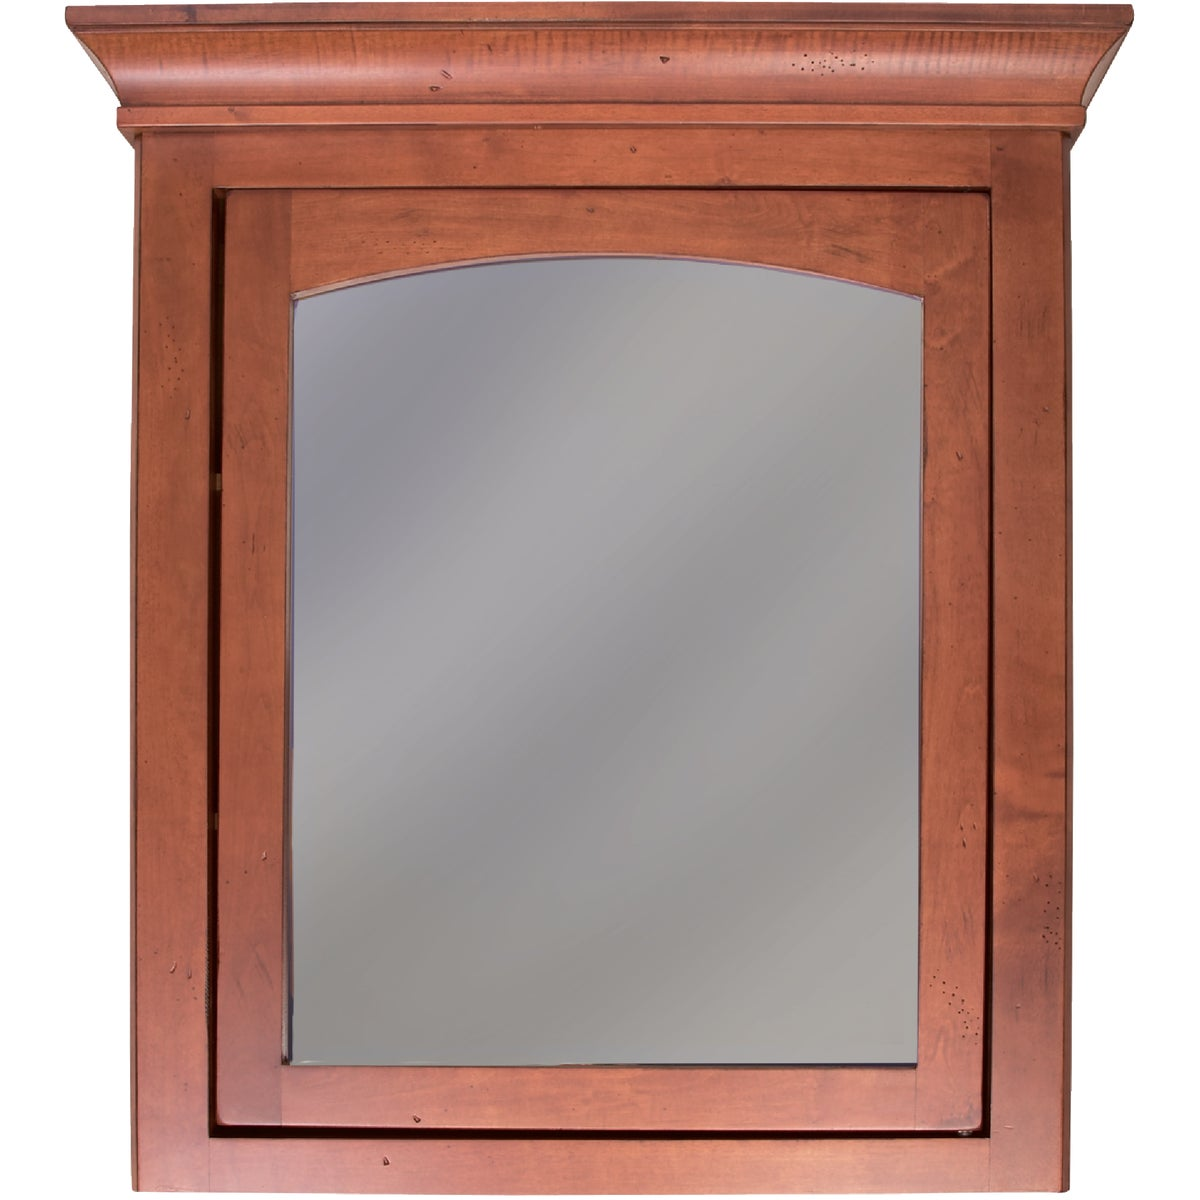 27X32 EXPRES MED CABINET - EP2732M by Sunnywood Products